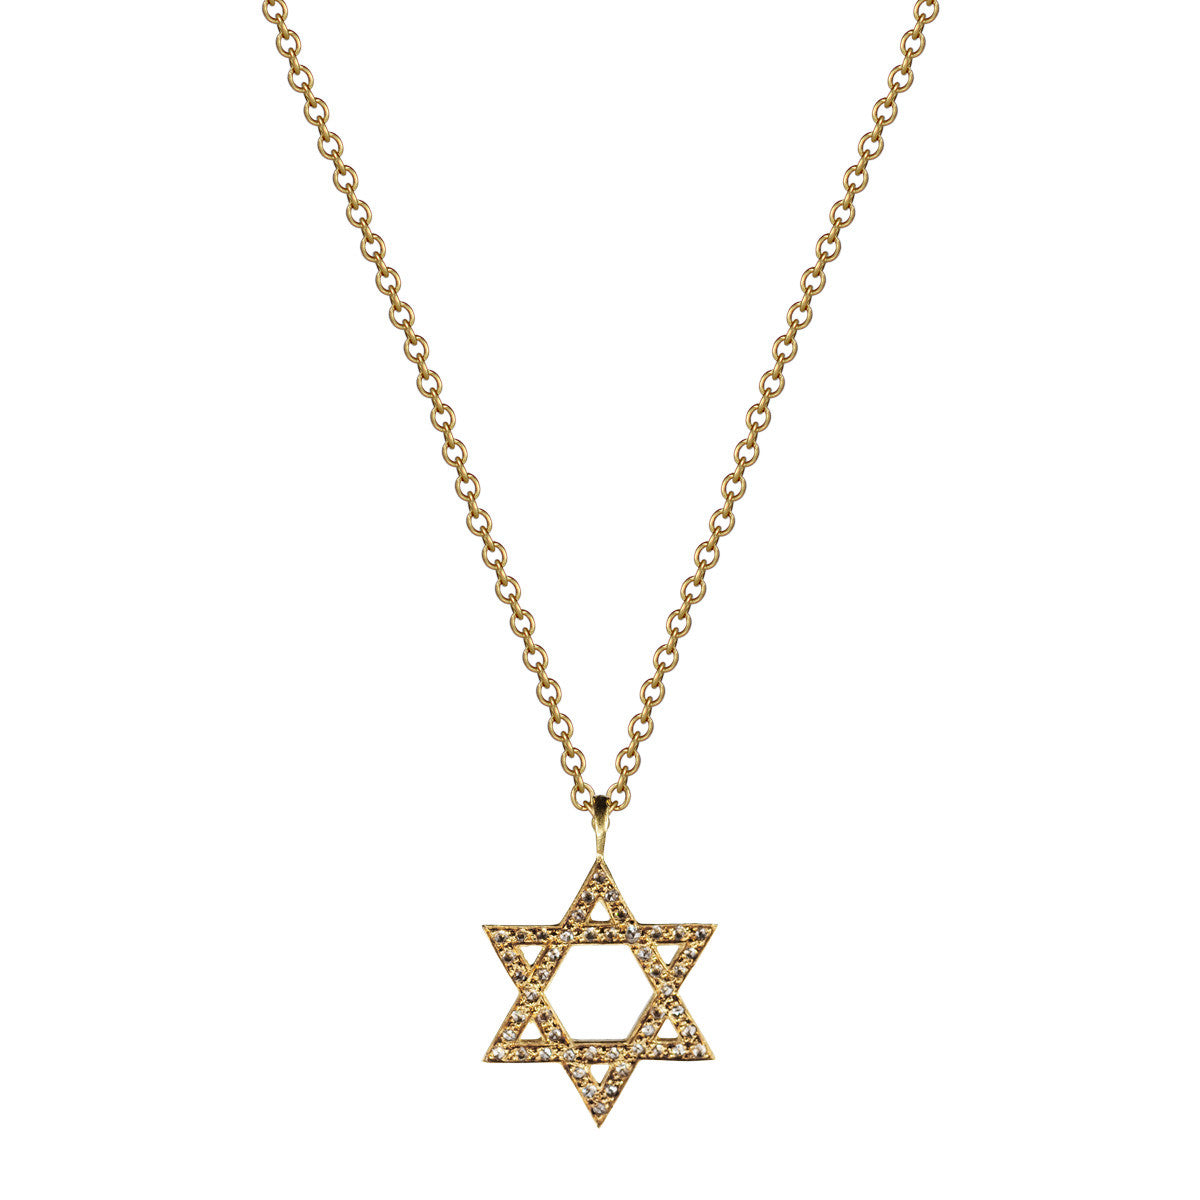 18k gold star of david pendant with diamonds mero 18k gold star of david pendant with diamonds aloadofball Image collections